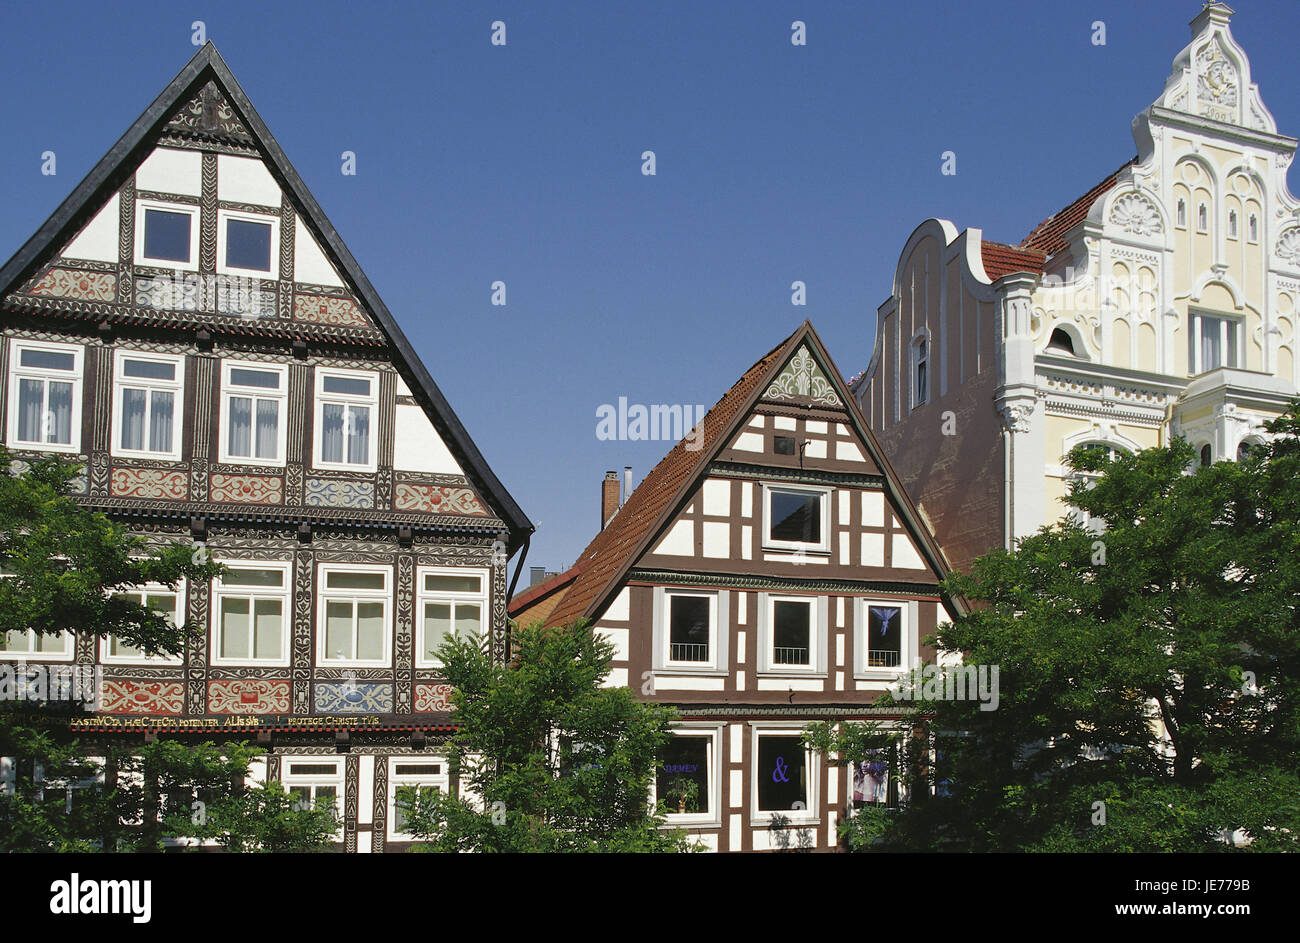 Germany, North Rhine-Westphalia, Detmold, Long street, Teutoburger wood, Old Town, town view, square, place of interest, - Stock Image